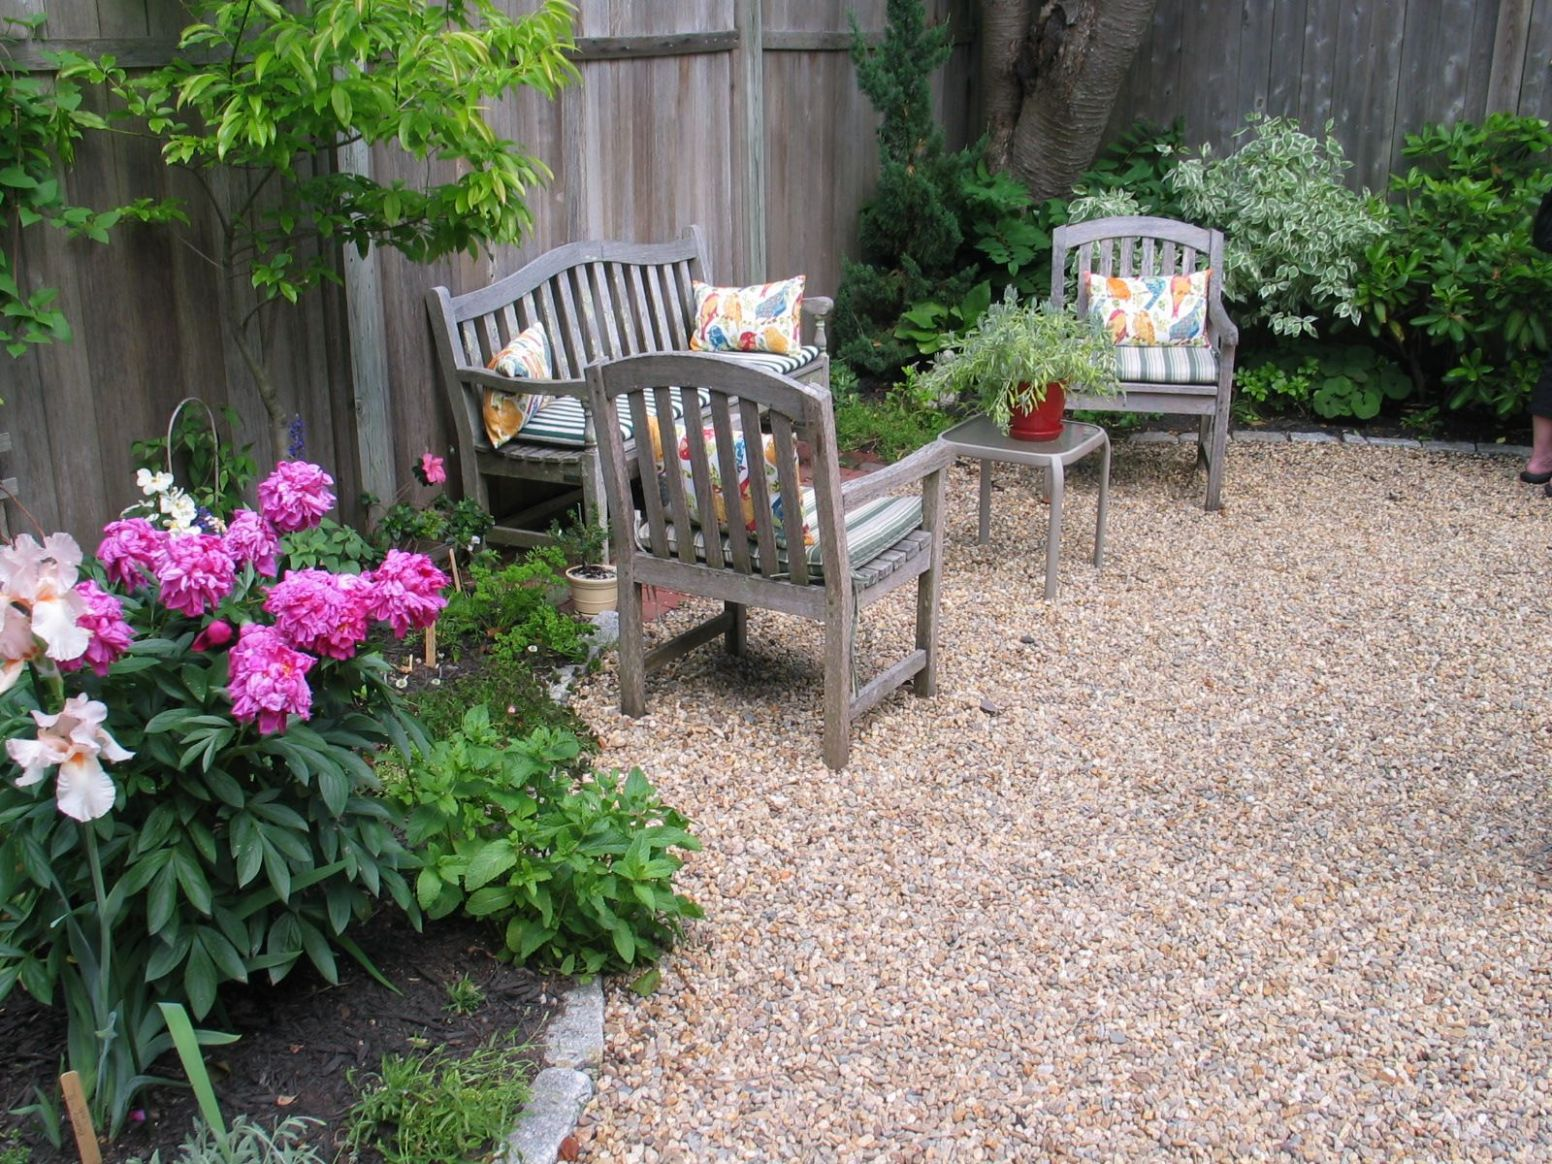 A Gardener Eliminates the Lawn (With images) | Gravel landscaping ...